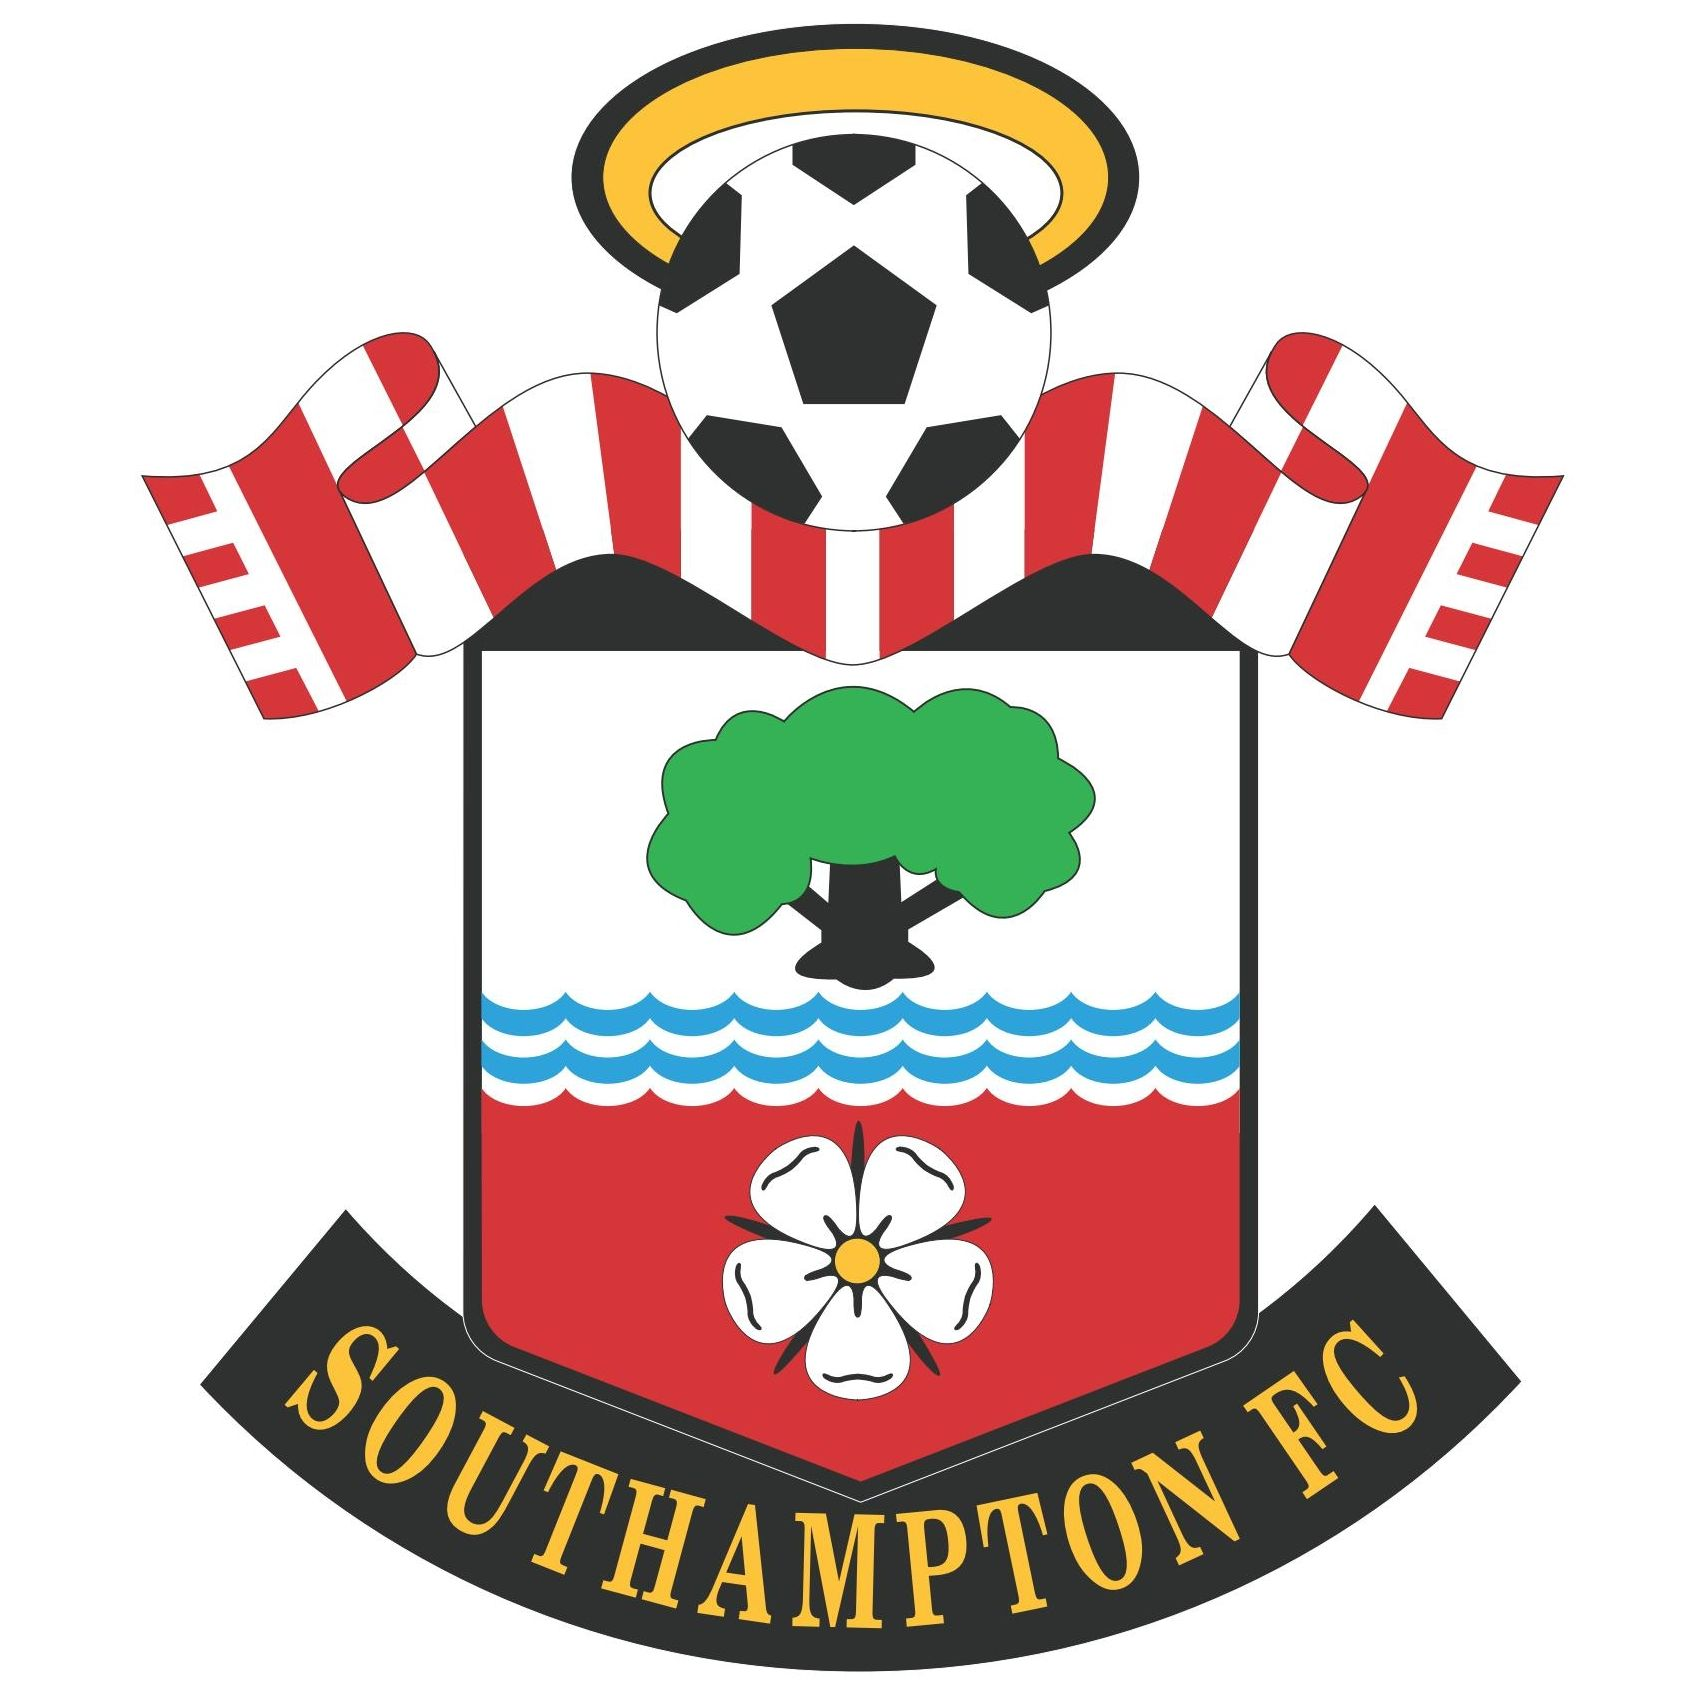 Southampton Football Club Logo Vector Free Logo Eps Download Sepak Bola Pejuang Chelsea